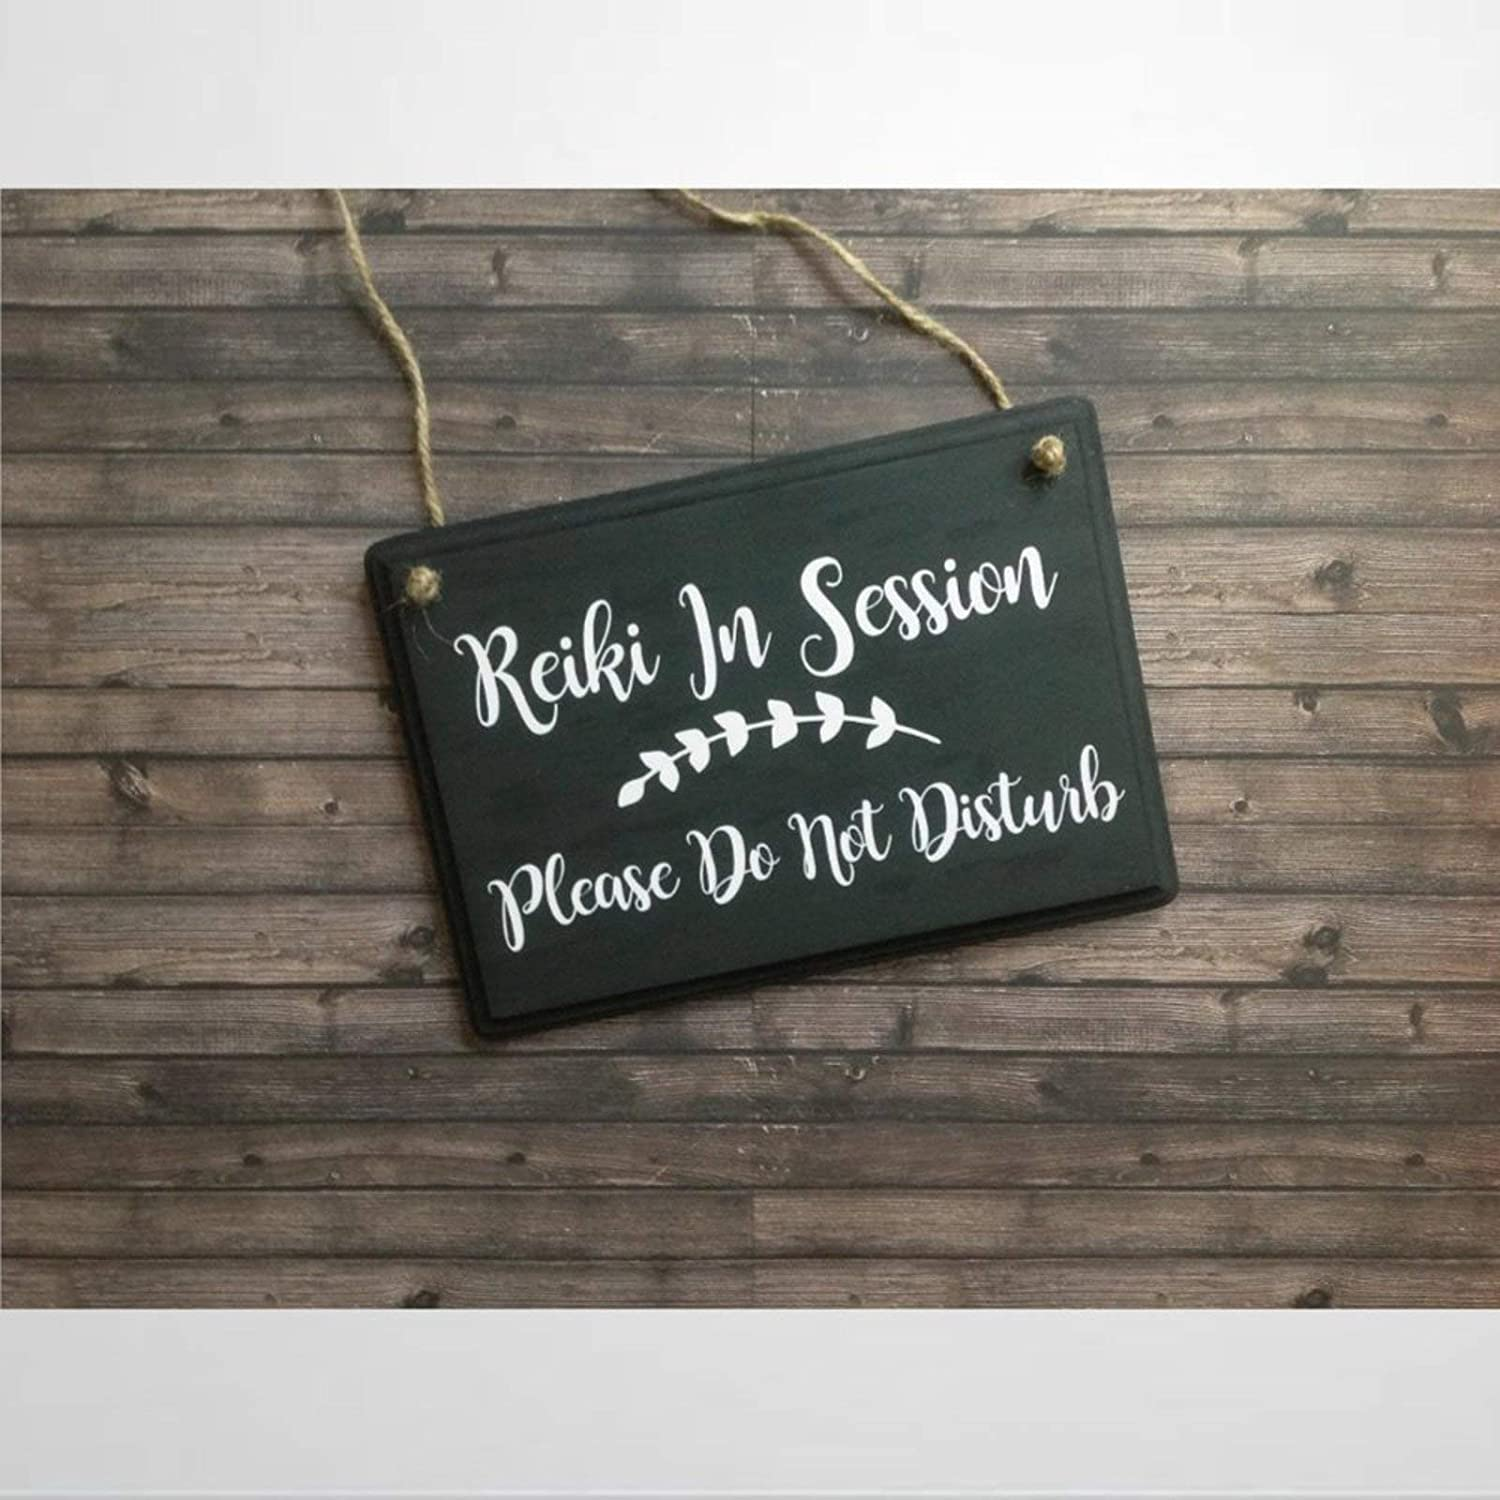 BYRON HOYLE Reiki in Session Wood Sign,Wooden Wall Hanging Art,Inspirational Farmhouse Wall Plaque,Rustic Home Decor for Living Room,Nursery,Bedroom,Porch,Gallery Wall